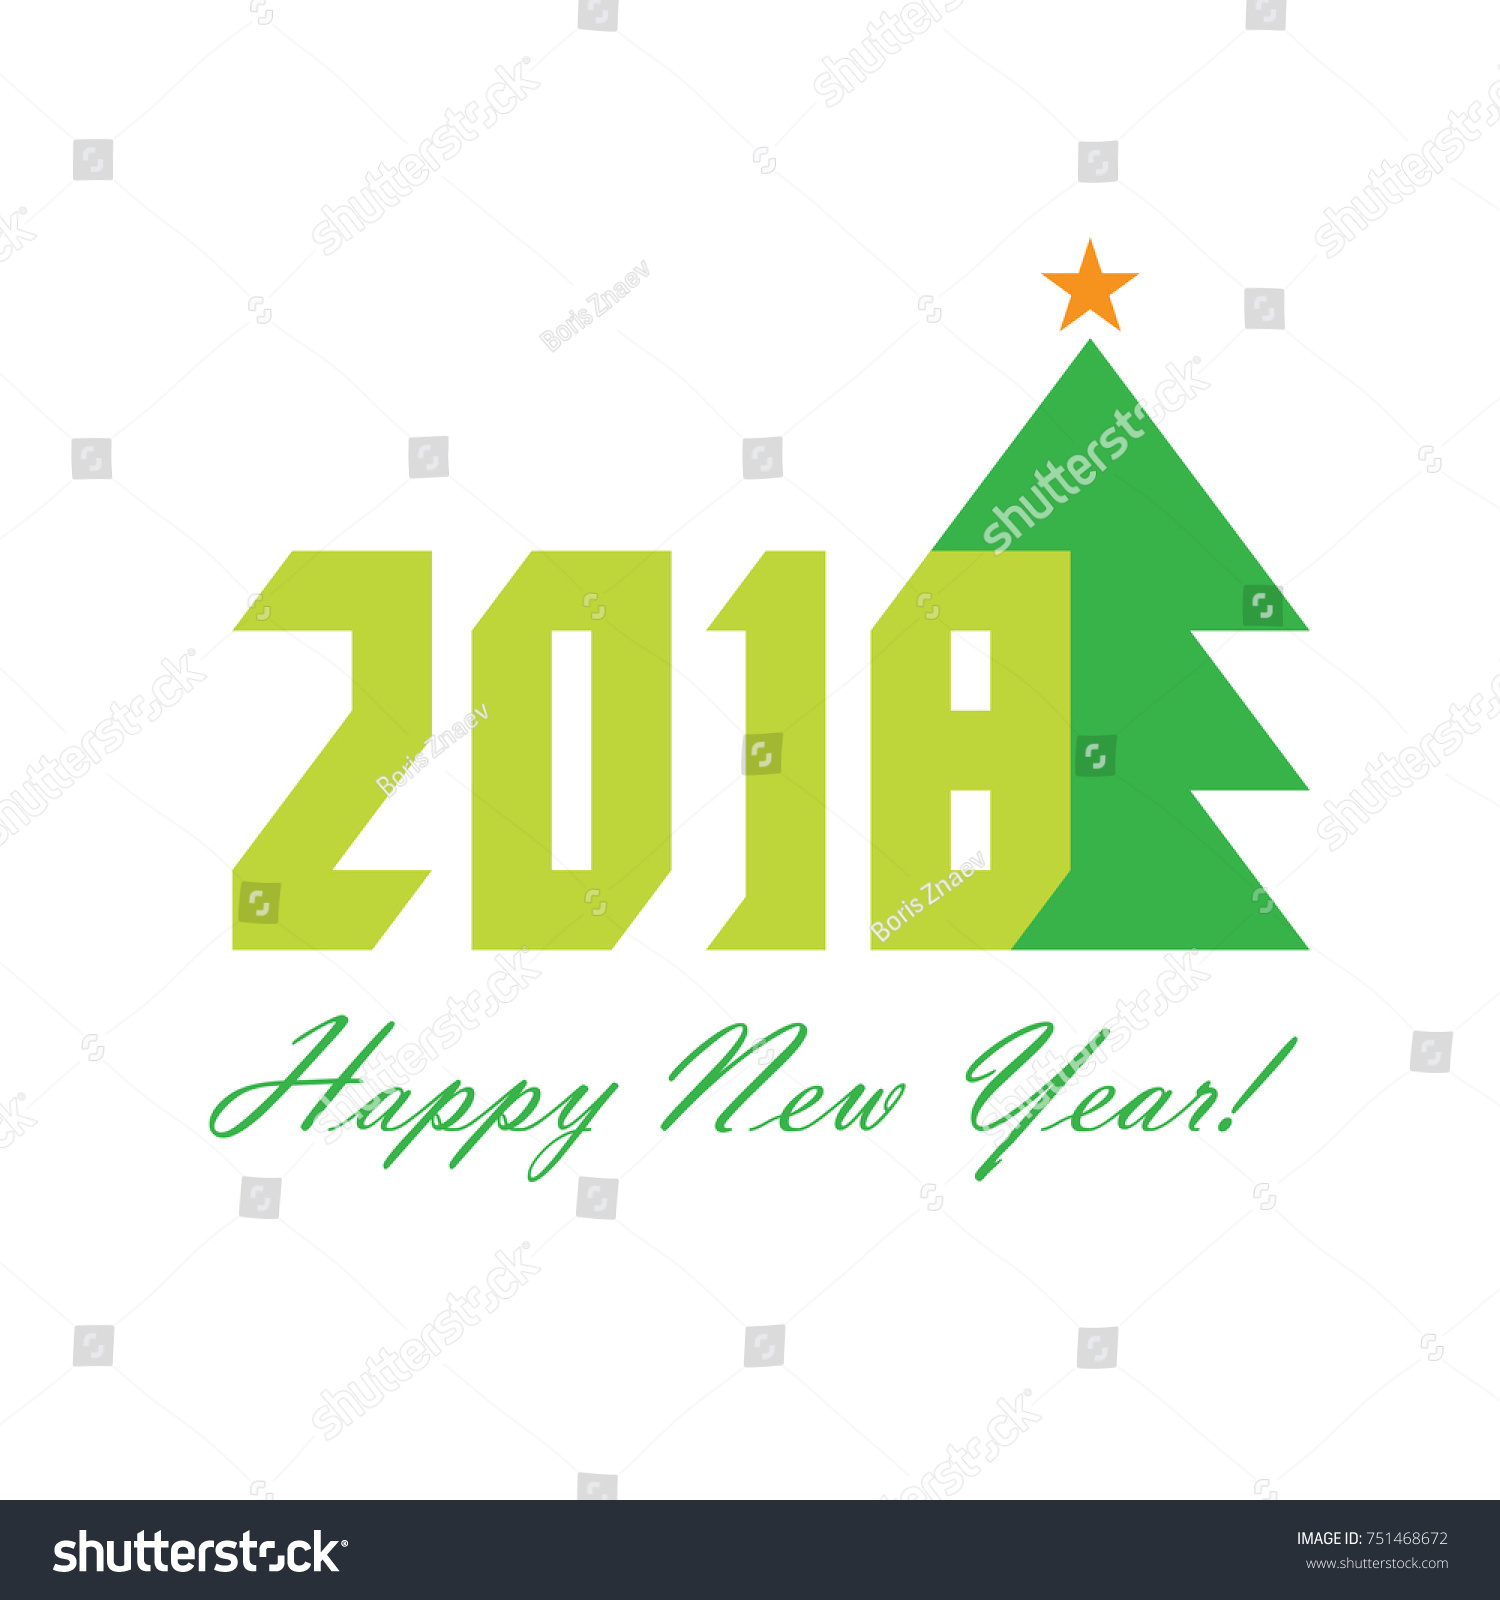 Happy new year 2018 greeting card stock vector 2018 751468672 happy new year 2018 greeting card christmas vector illustration m4hsunfo